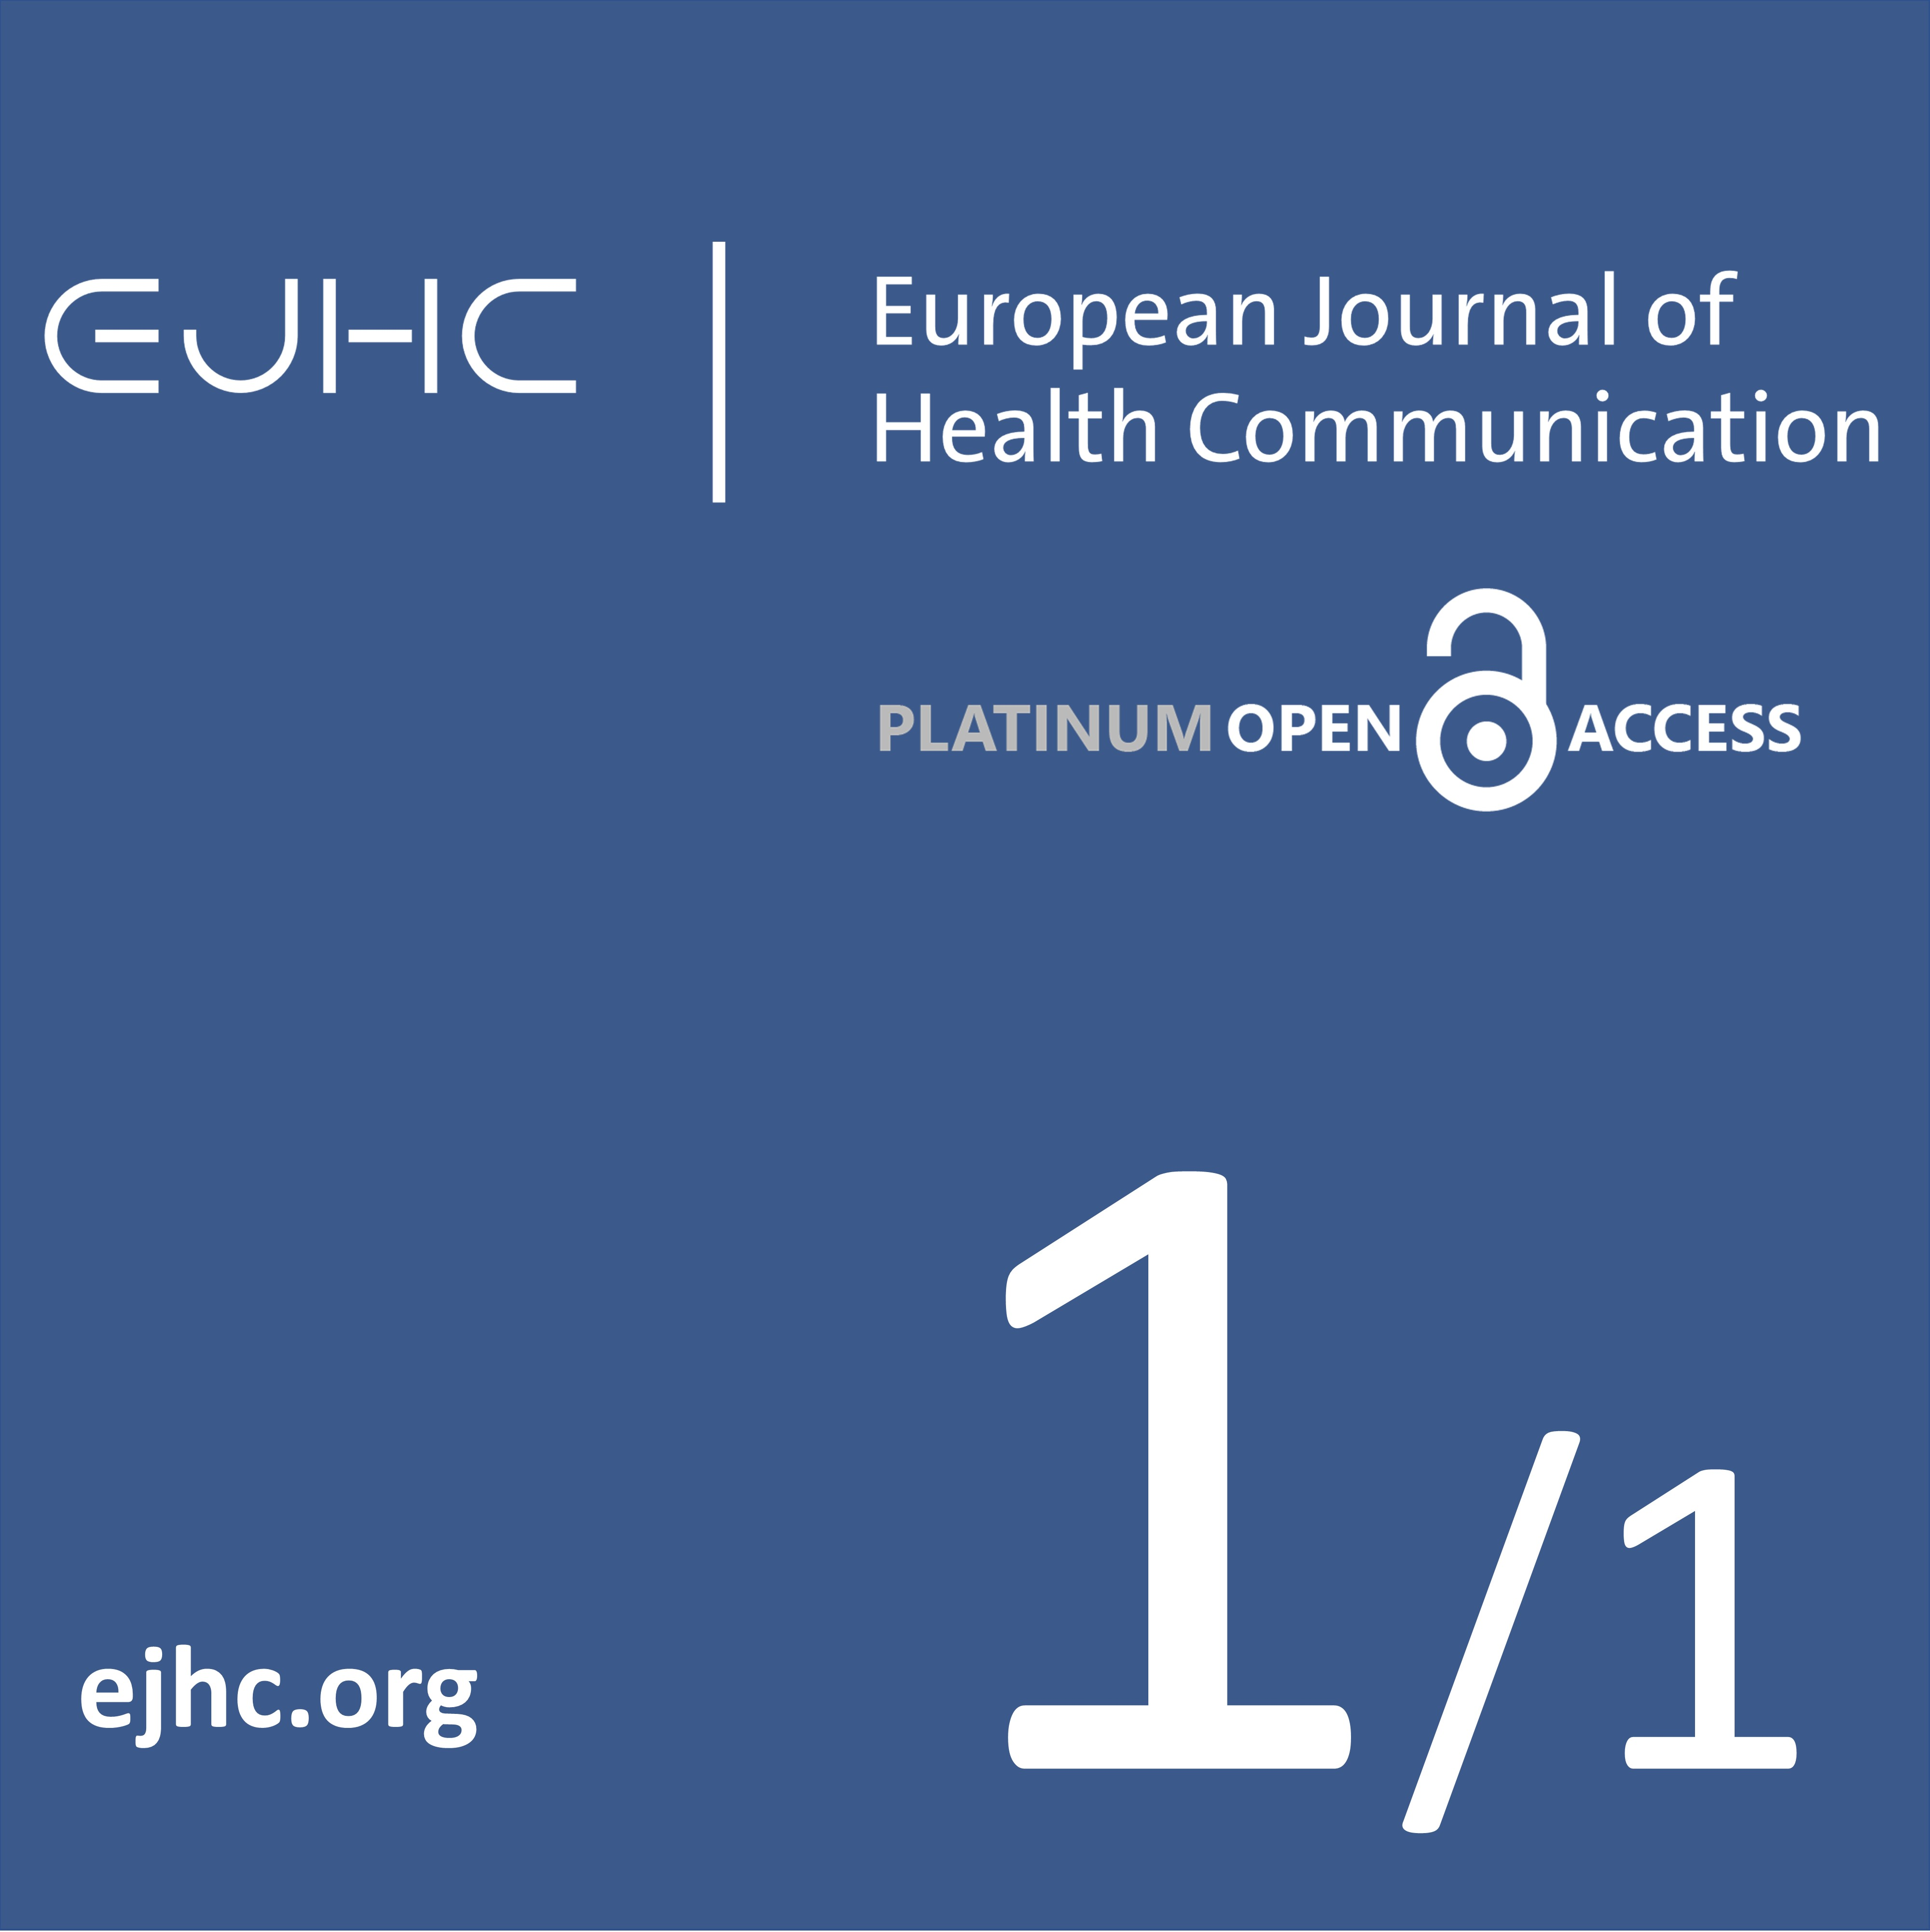 EJHC - European Journal of Health Communication